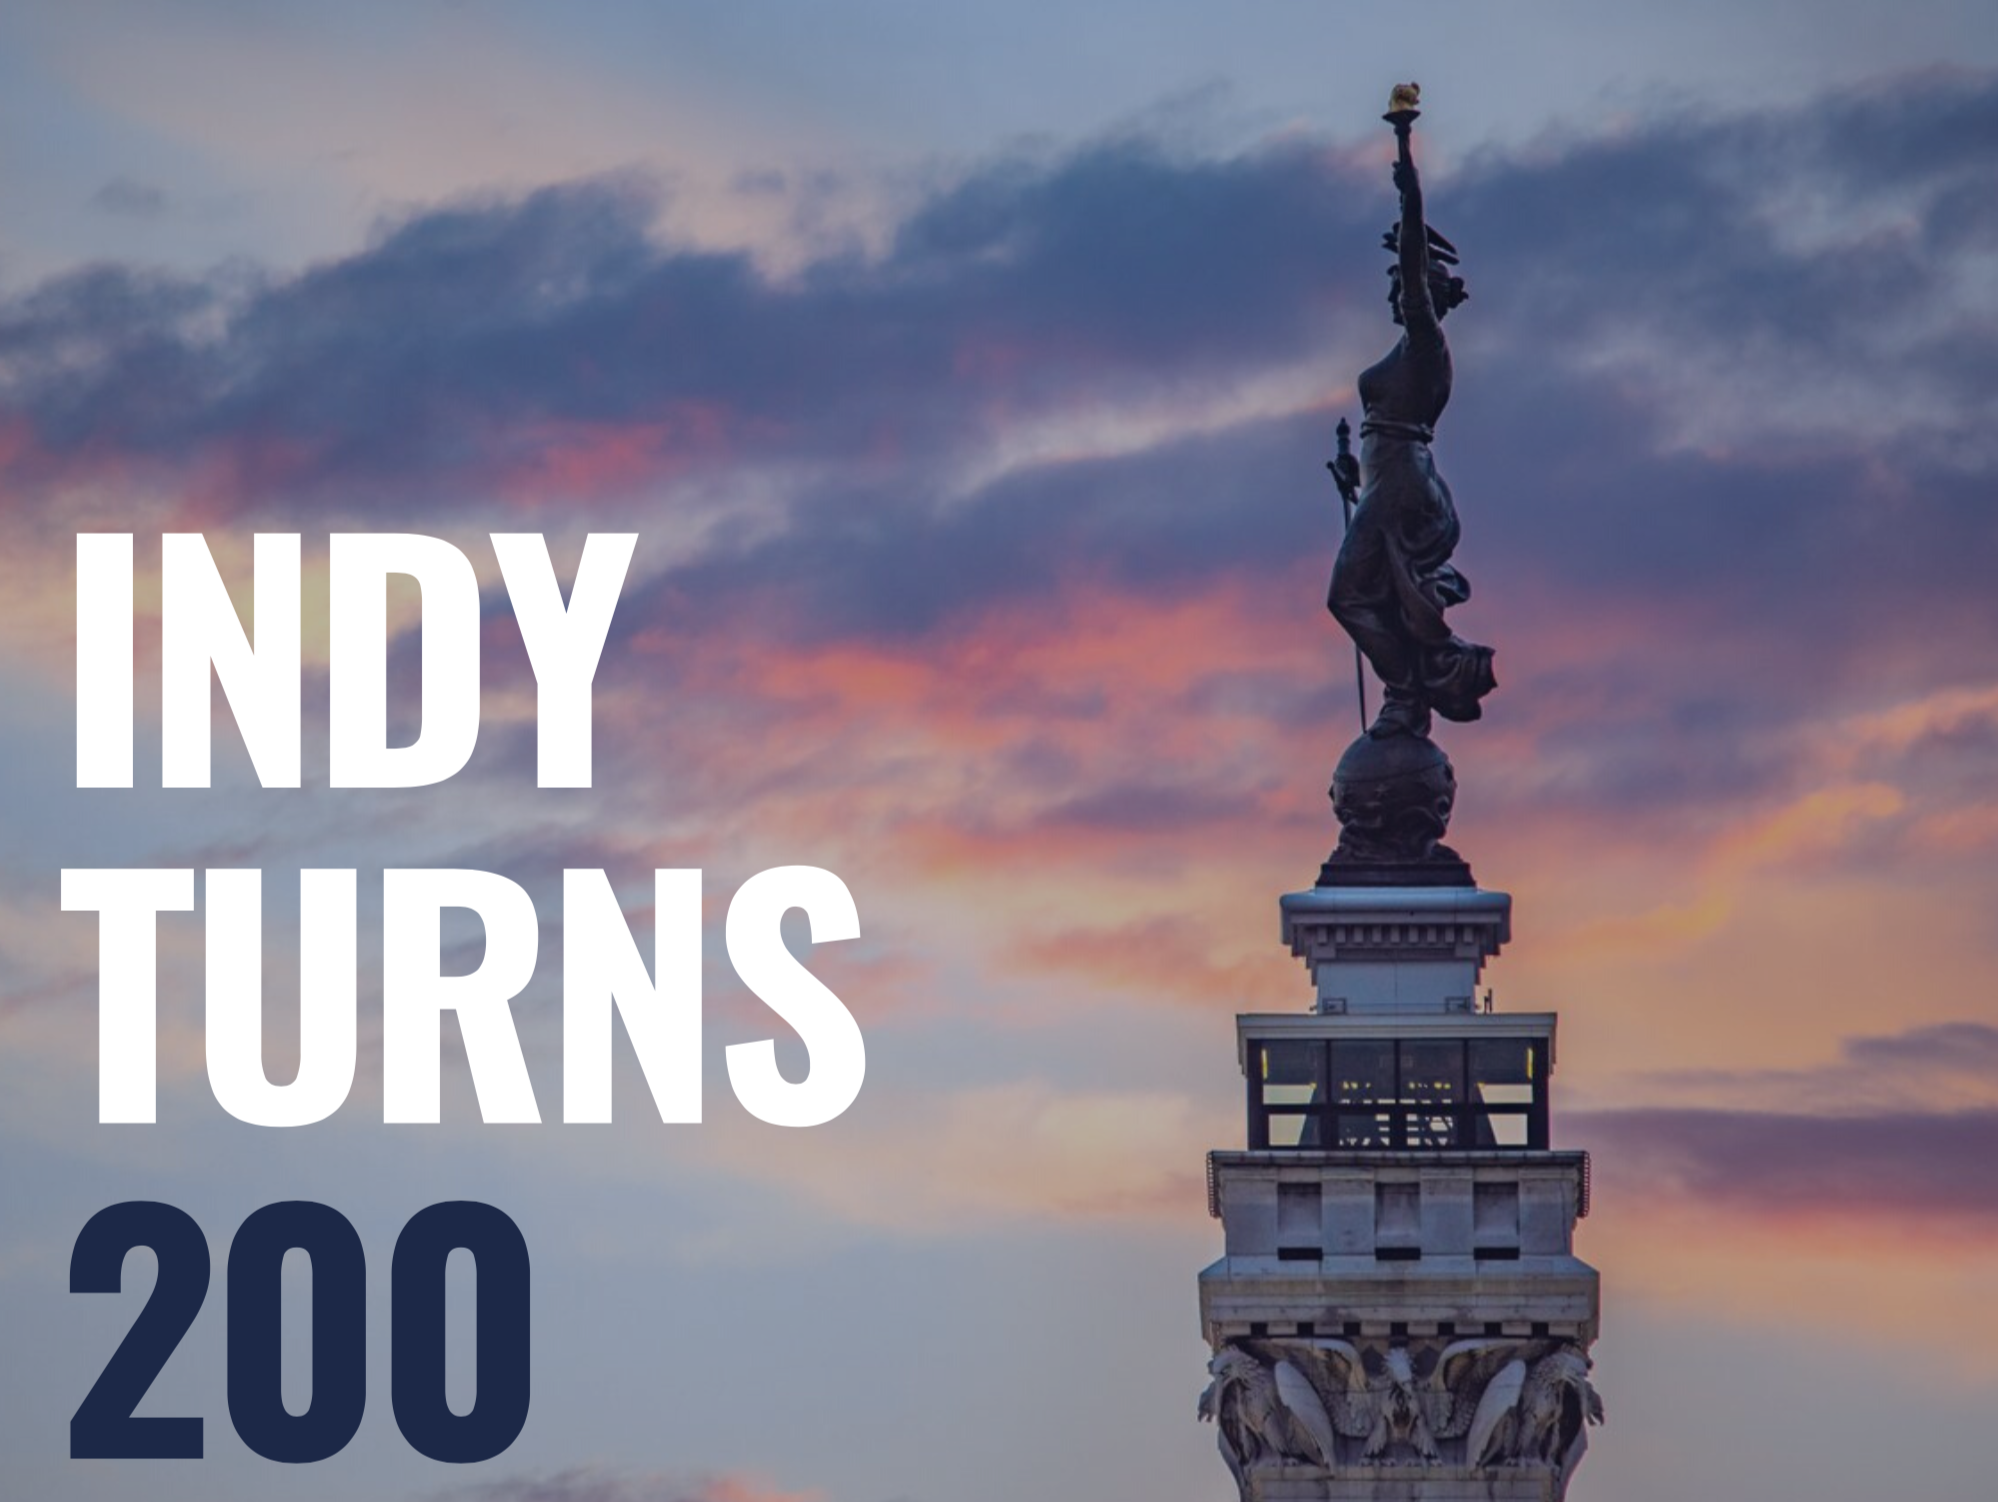 Indy Turns 200